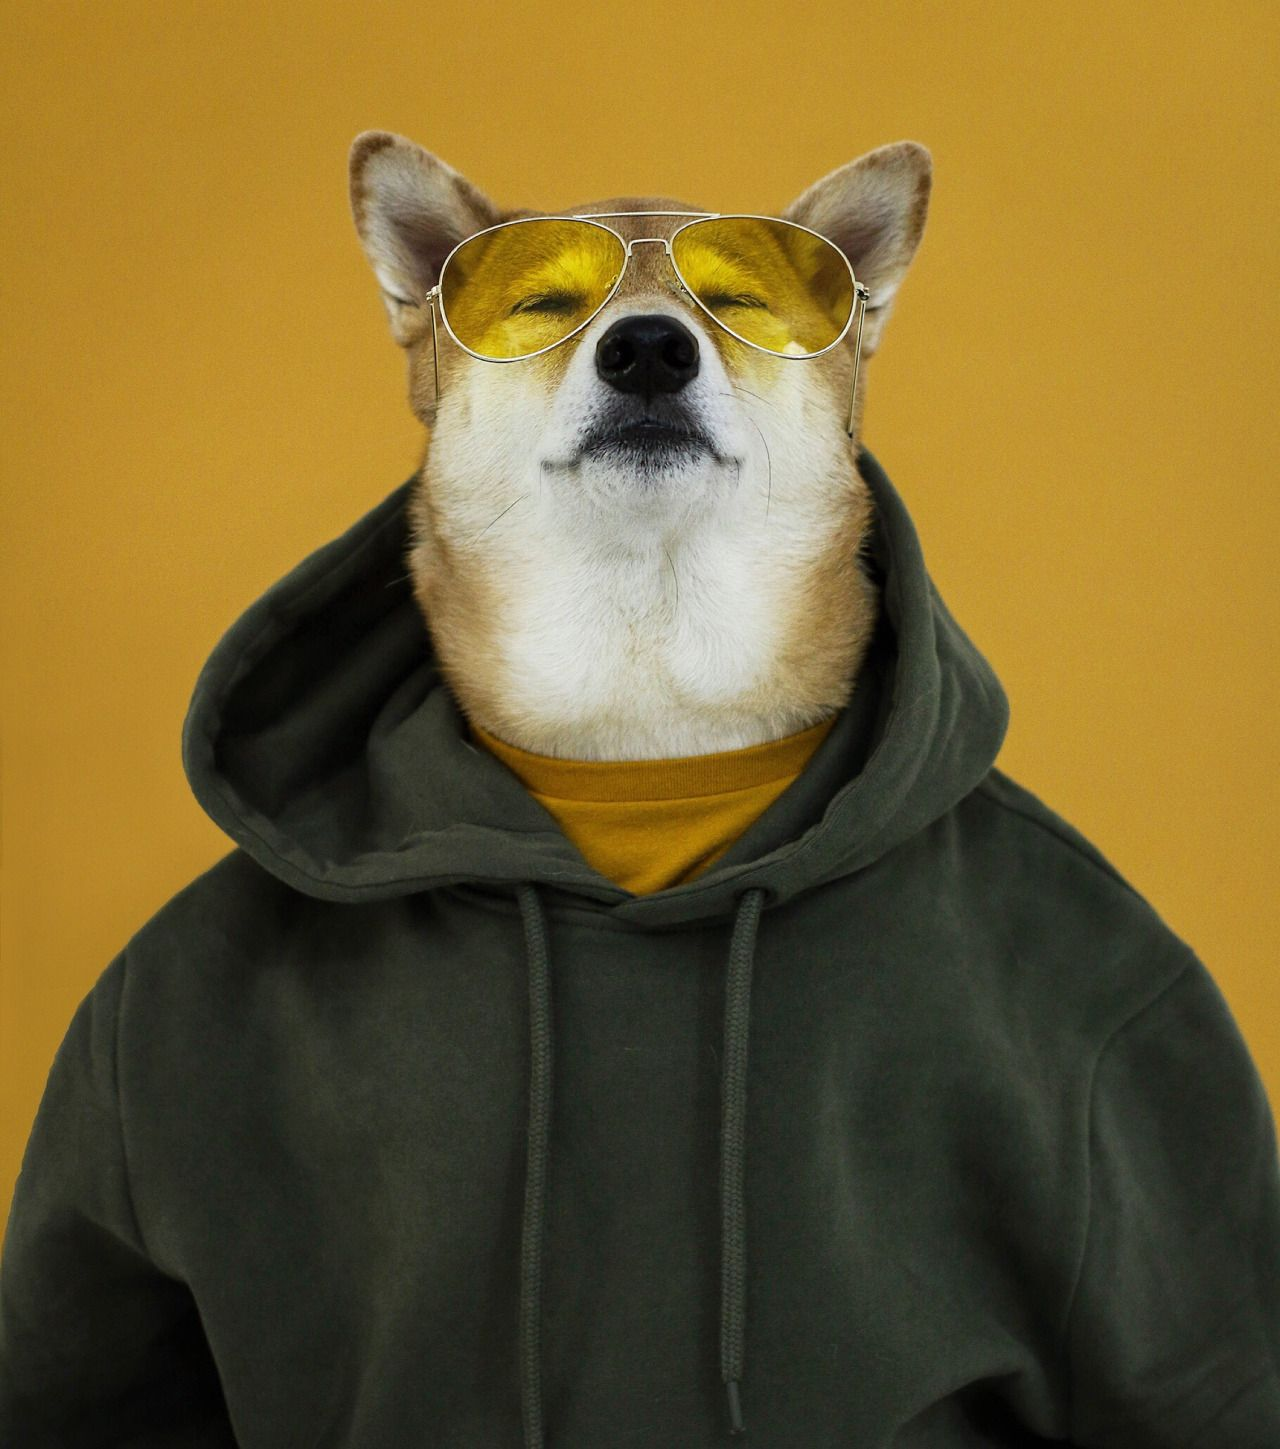 Shiba Inu And German Shepherd Mix Dog With Glasses Animals Cute Dog Pictures Dogs